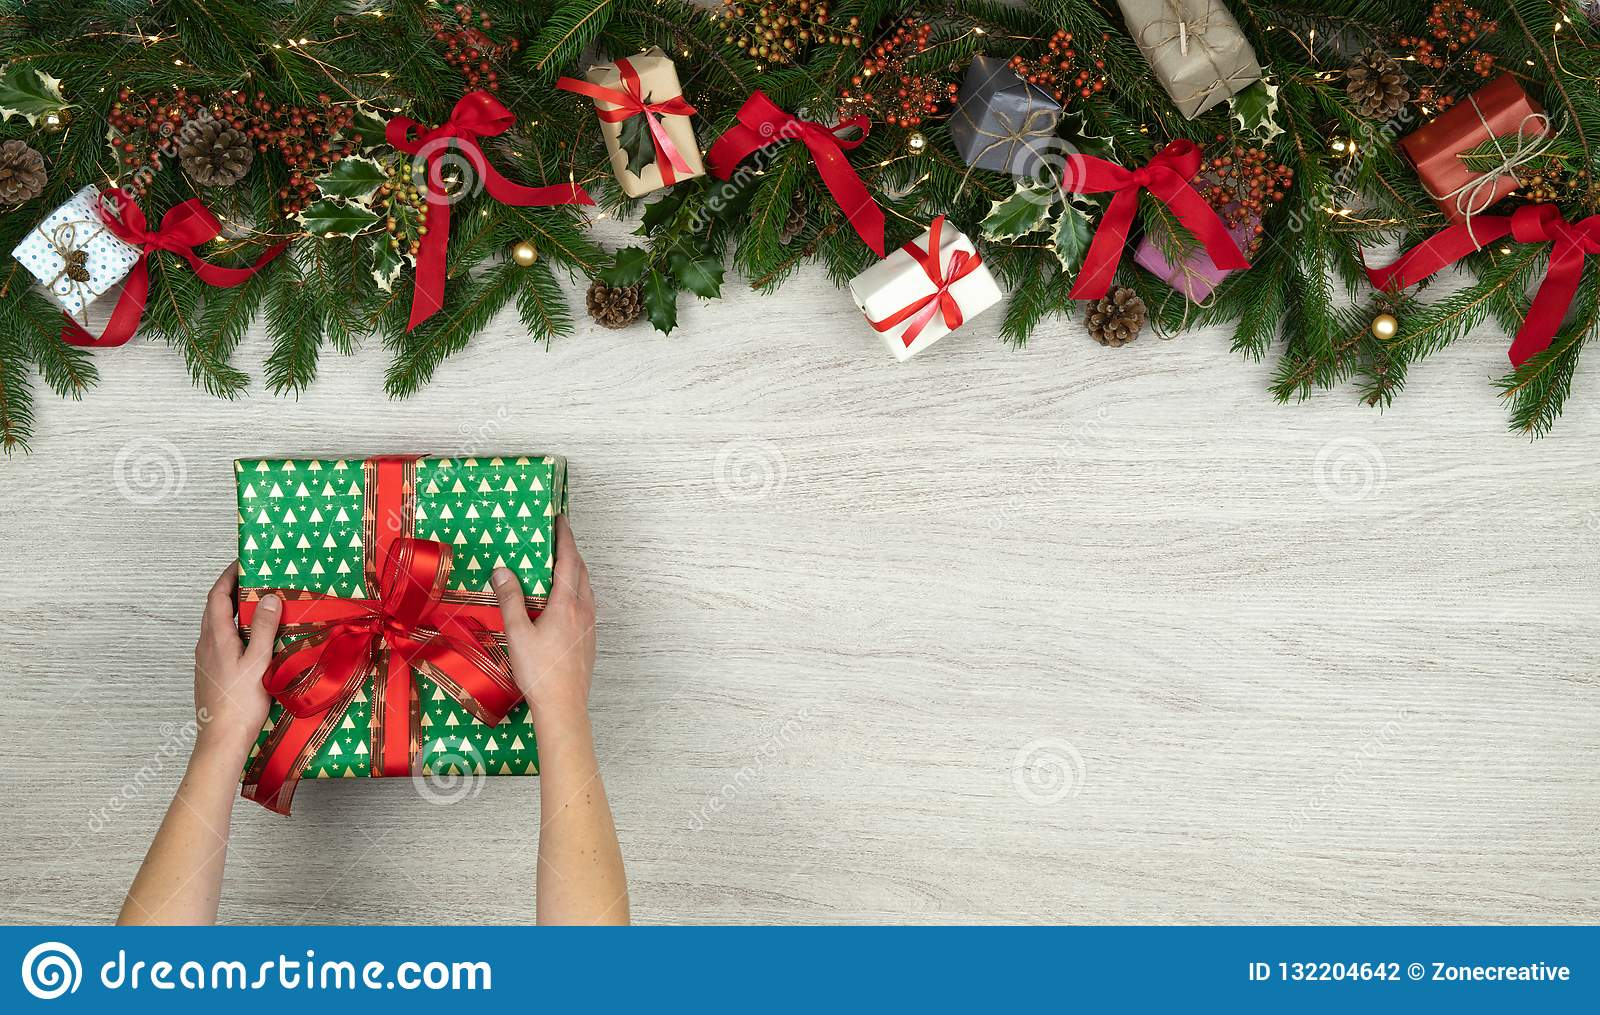 Text or logo empty copy space in vertical top view white wood with pine branches,ribbons,lights,gift present box,hands